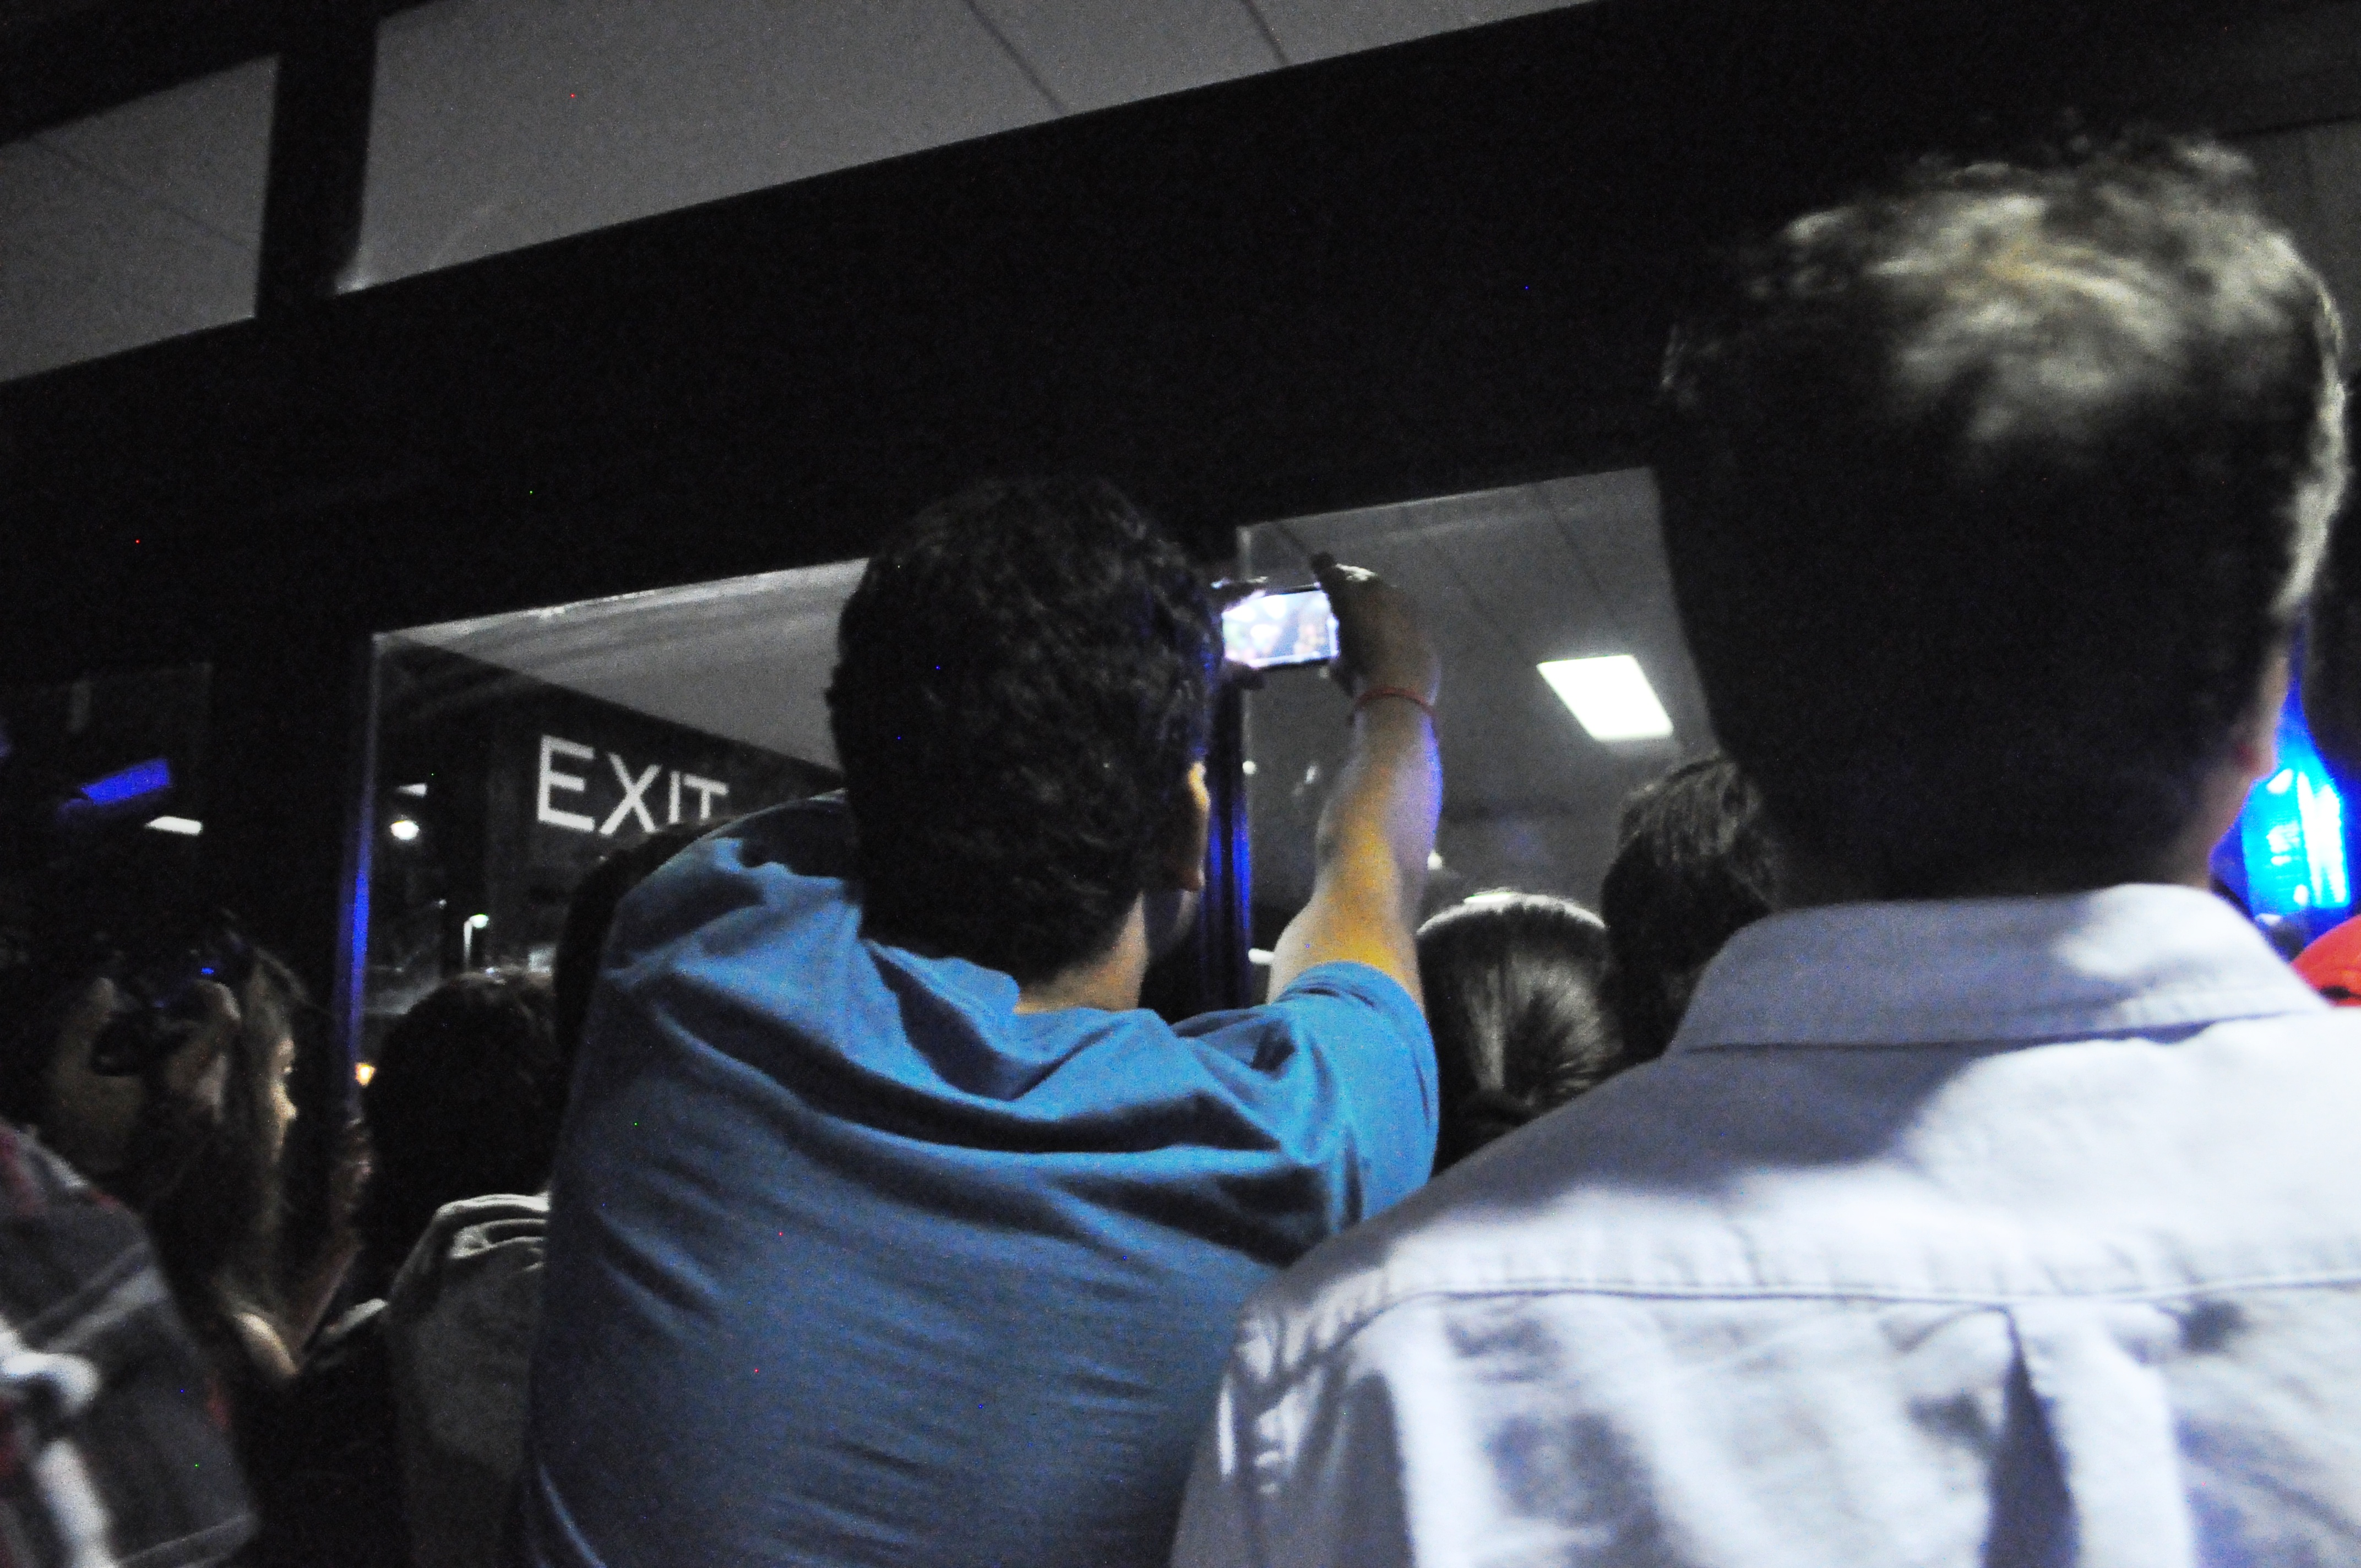 IIFA Green Carpet at Tampa International Airport - Fans Try to Snap a Photo of Priyanka Chopra, April 24, 2014